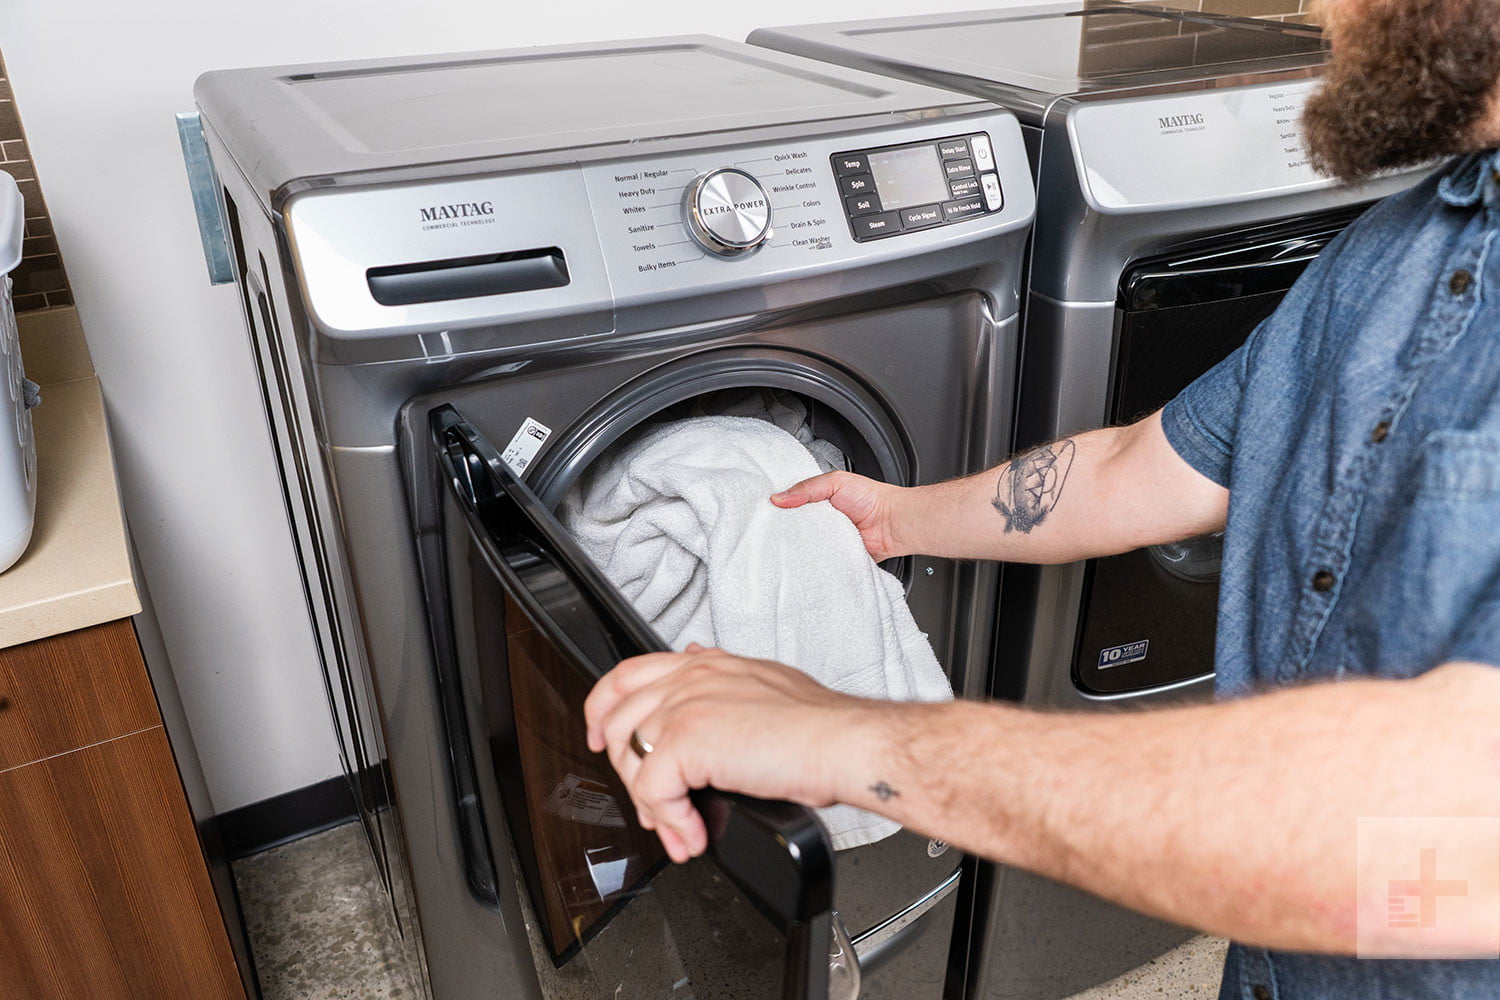 Maytag Mhw6630hc0 Front Load Washer Review Digital Trends